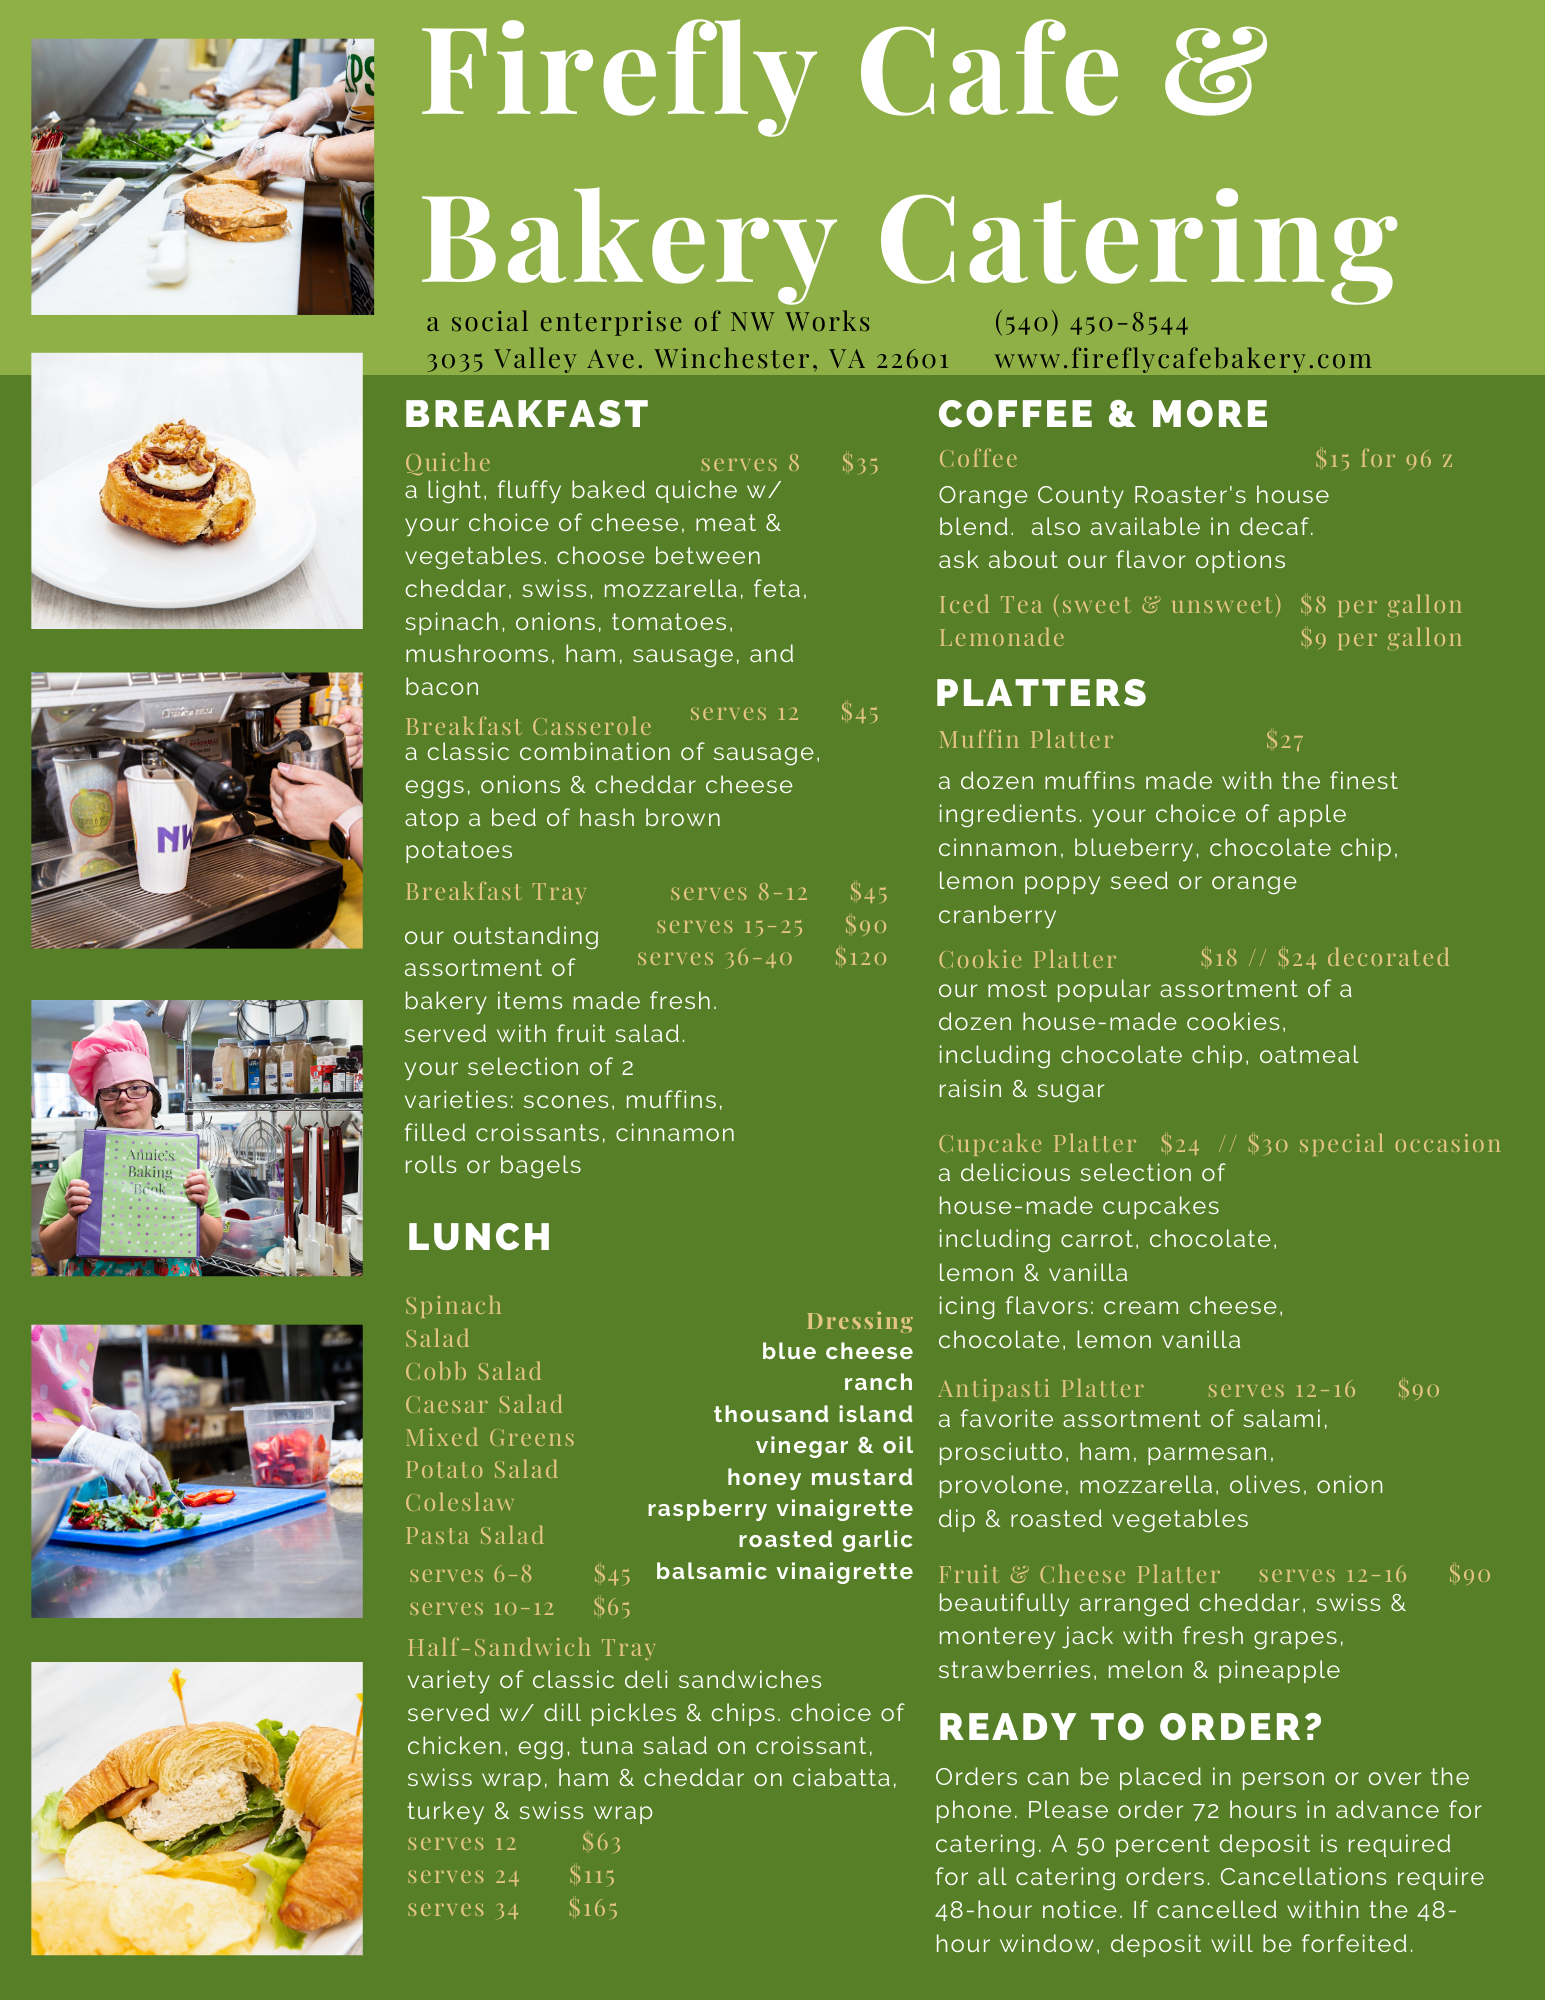 Image of the catering menu. If you are unable to view this item, please contact our team at ewilliams@nwworks.com and Ellie will provide a copy of the menu in text form.